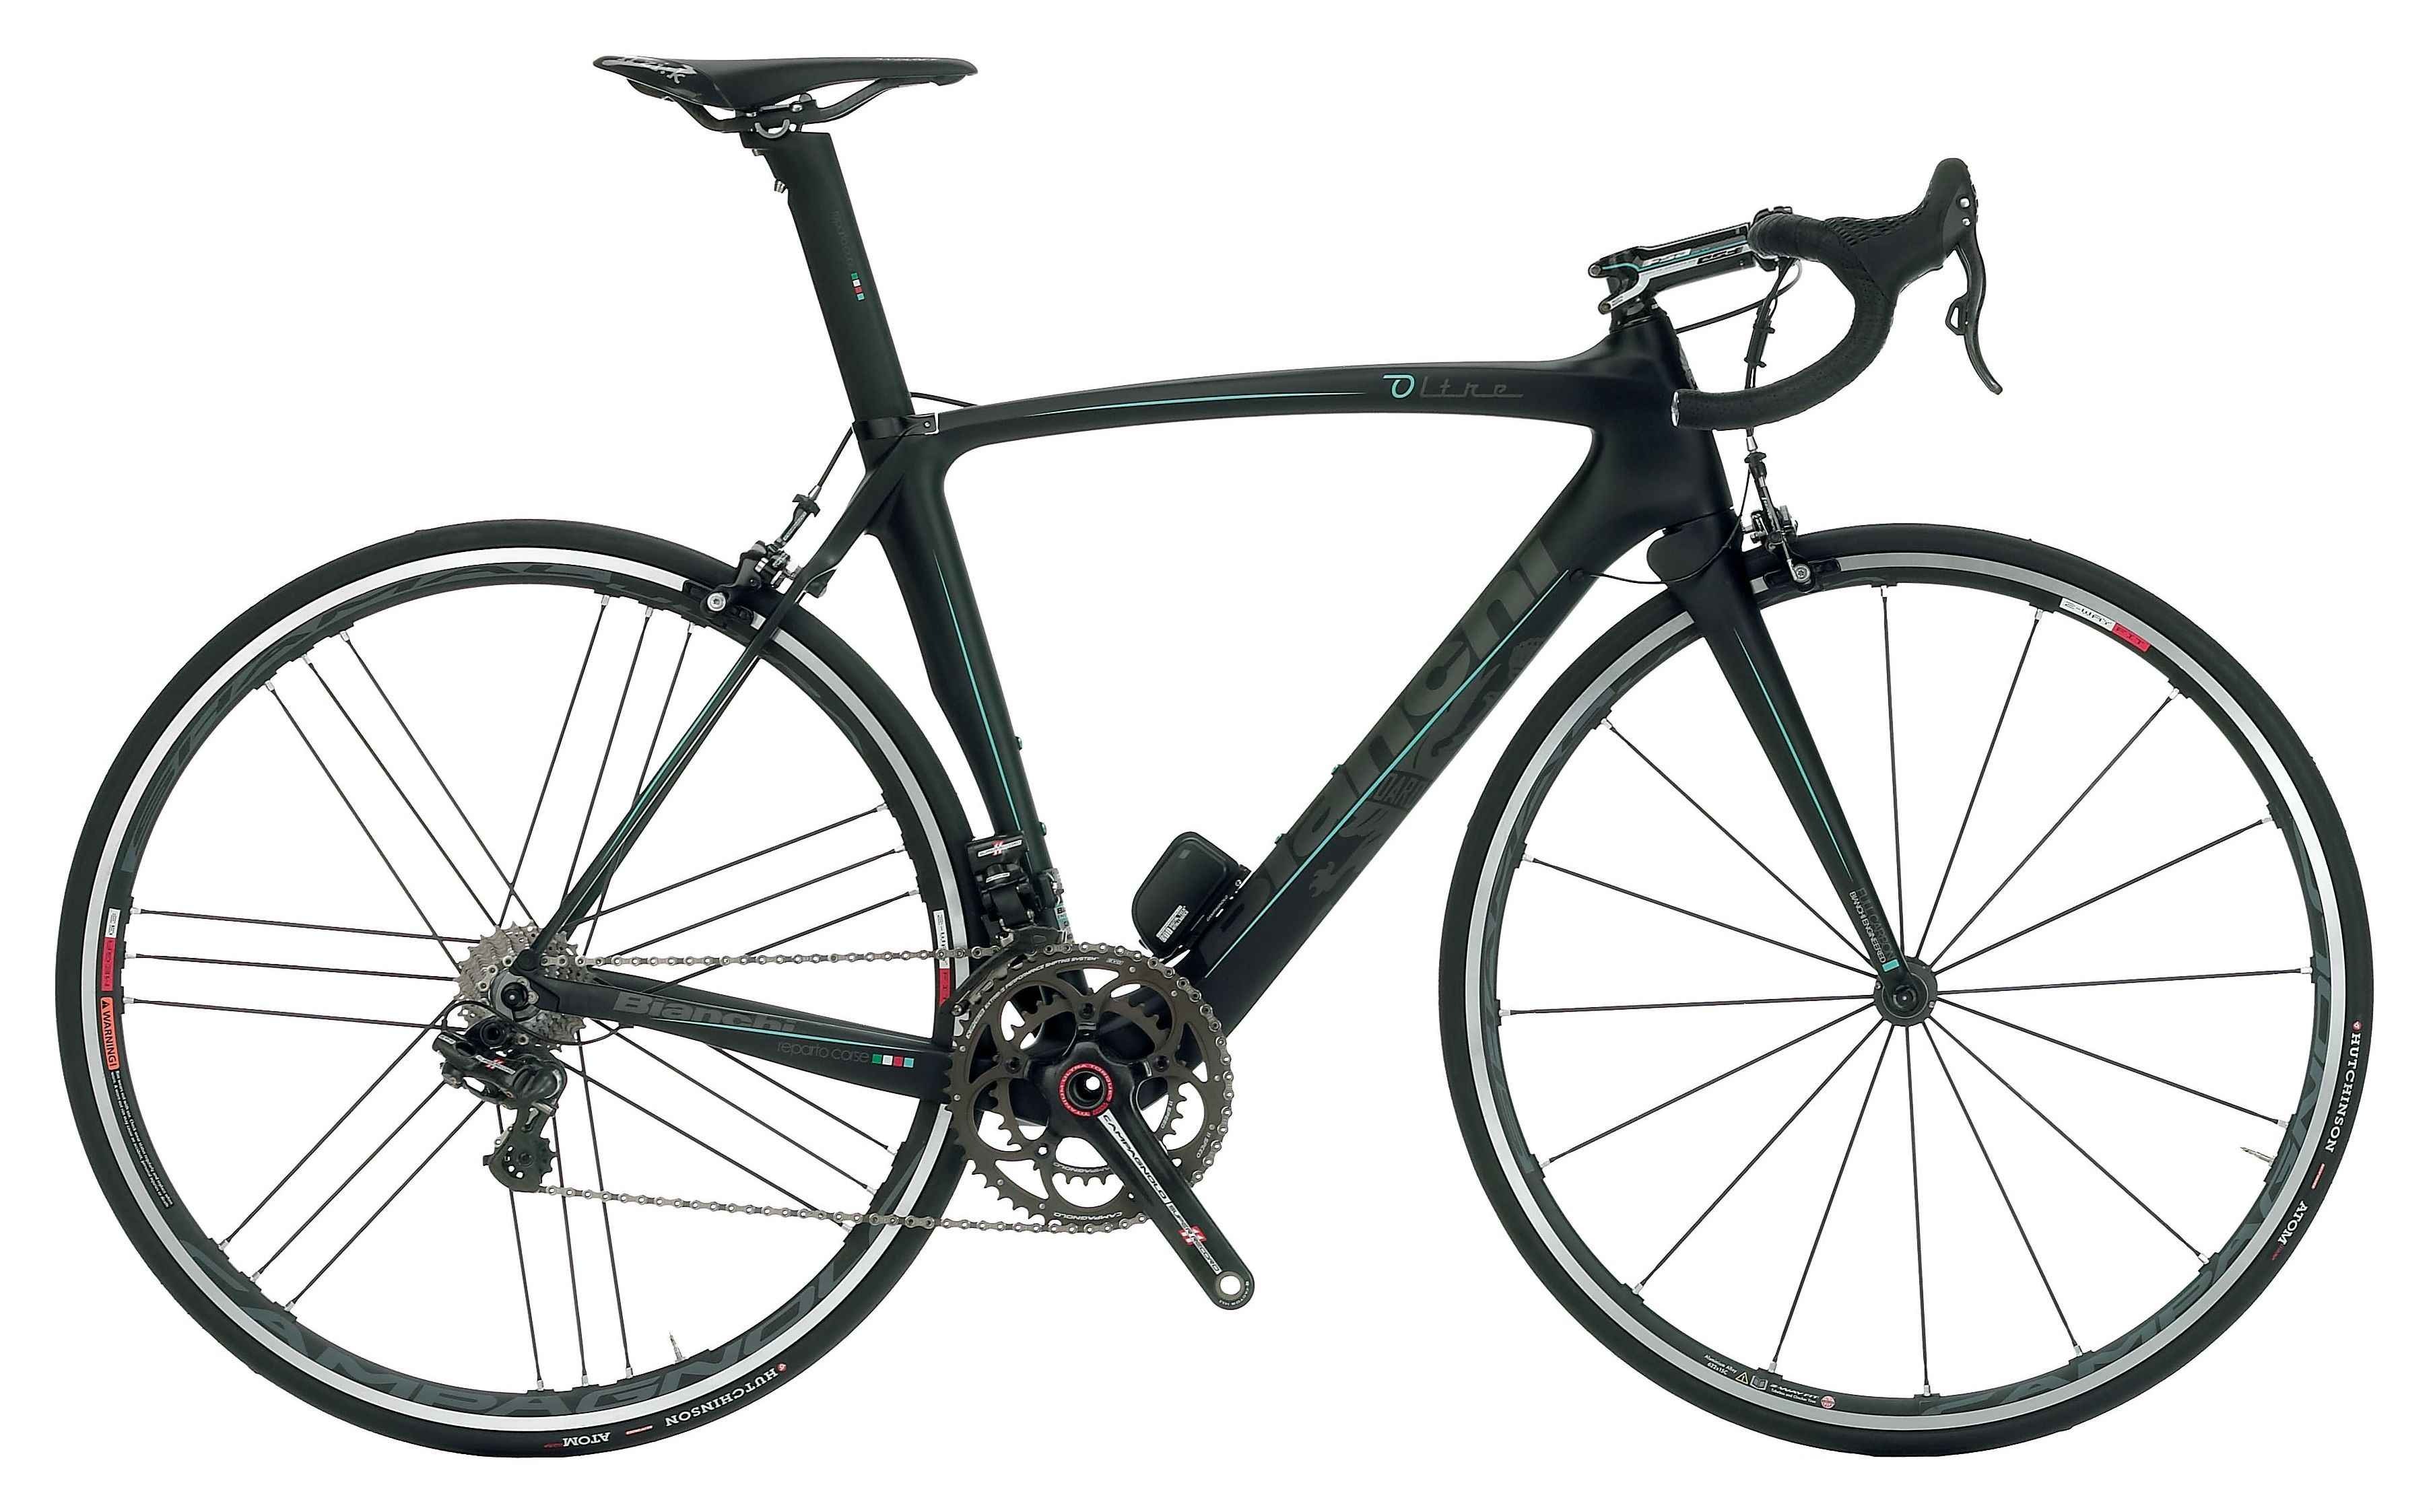 Bianchi Oltre Super Record Eps Road Bike Black Limited Edition Bicycle Bicycle Ridley Bikes Super Bikes